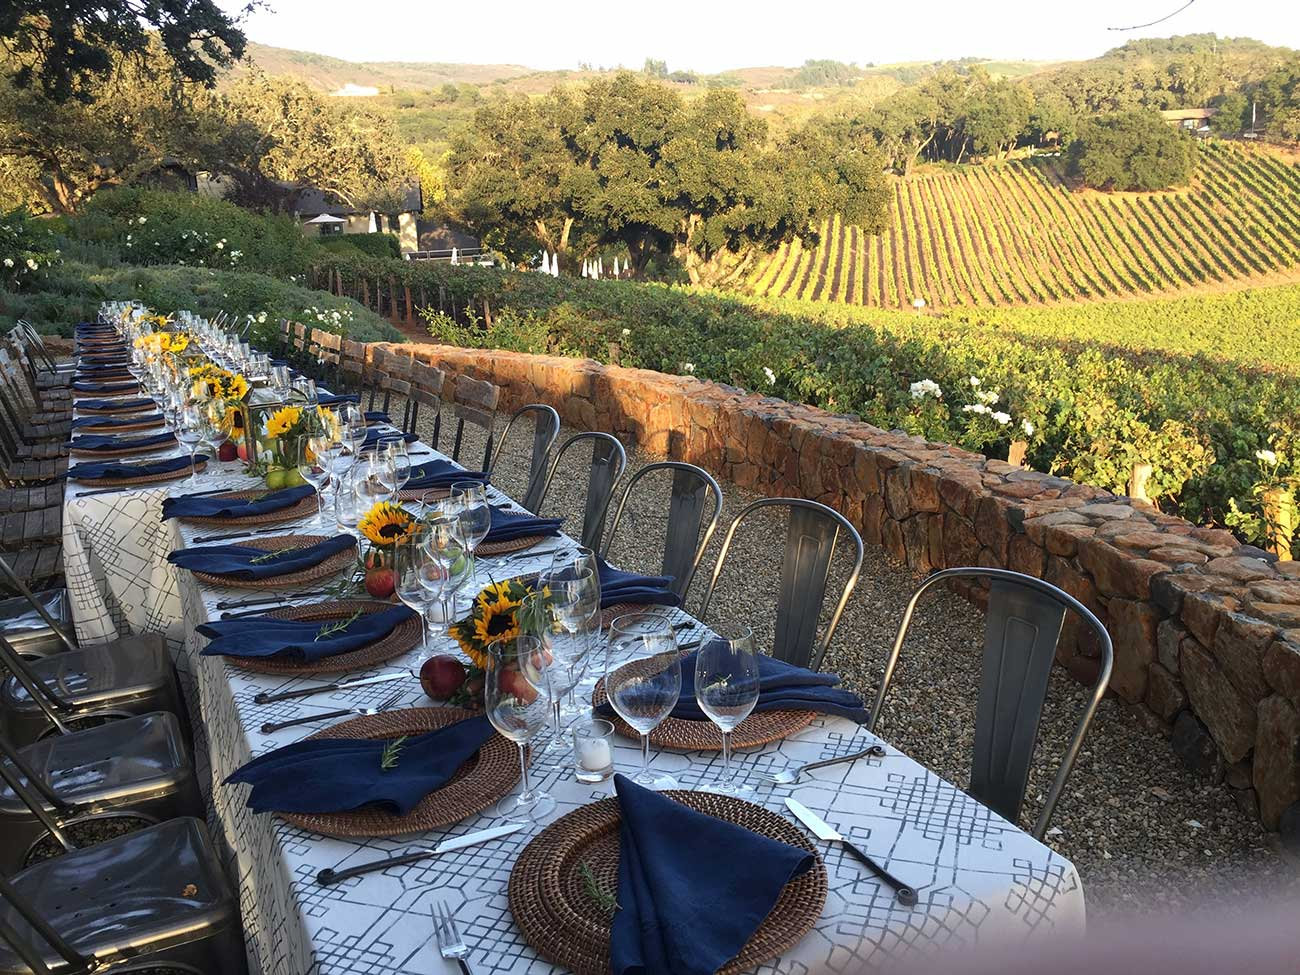 Tabletop design with crystal, dinnerware and sunflowers overlooking a vineyard